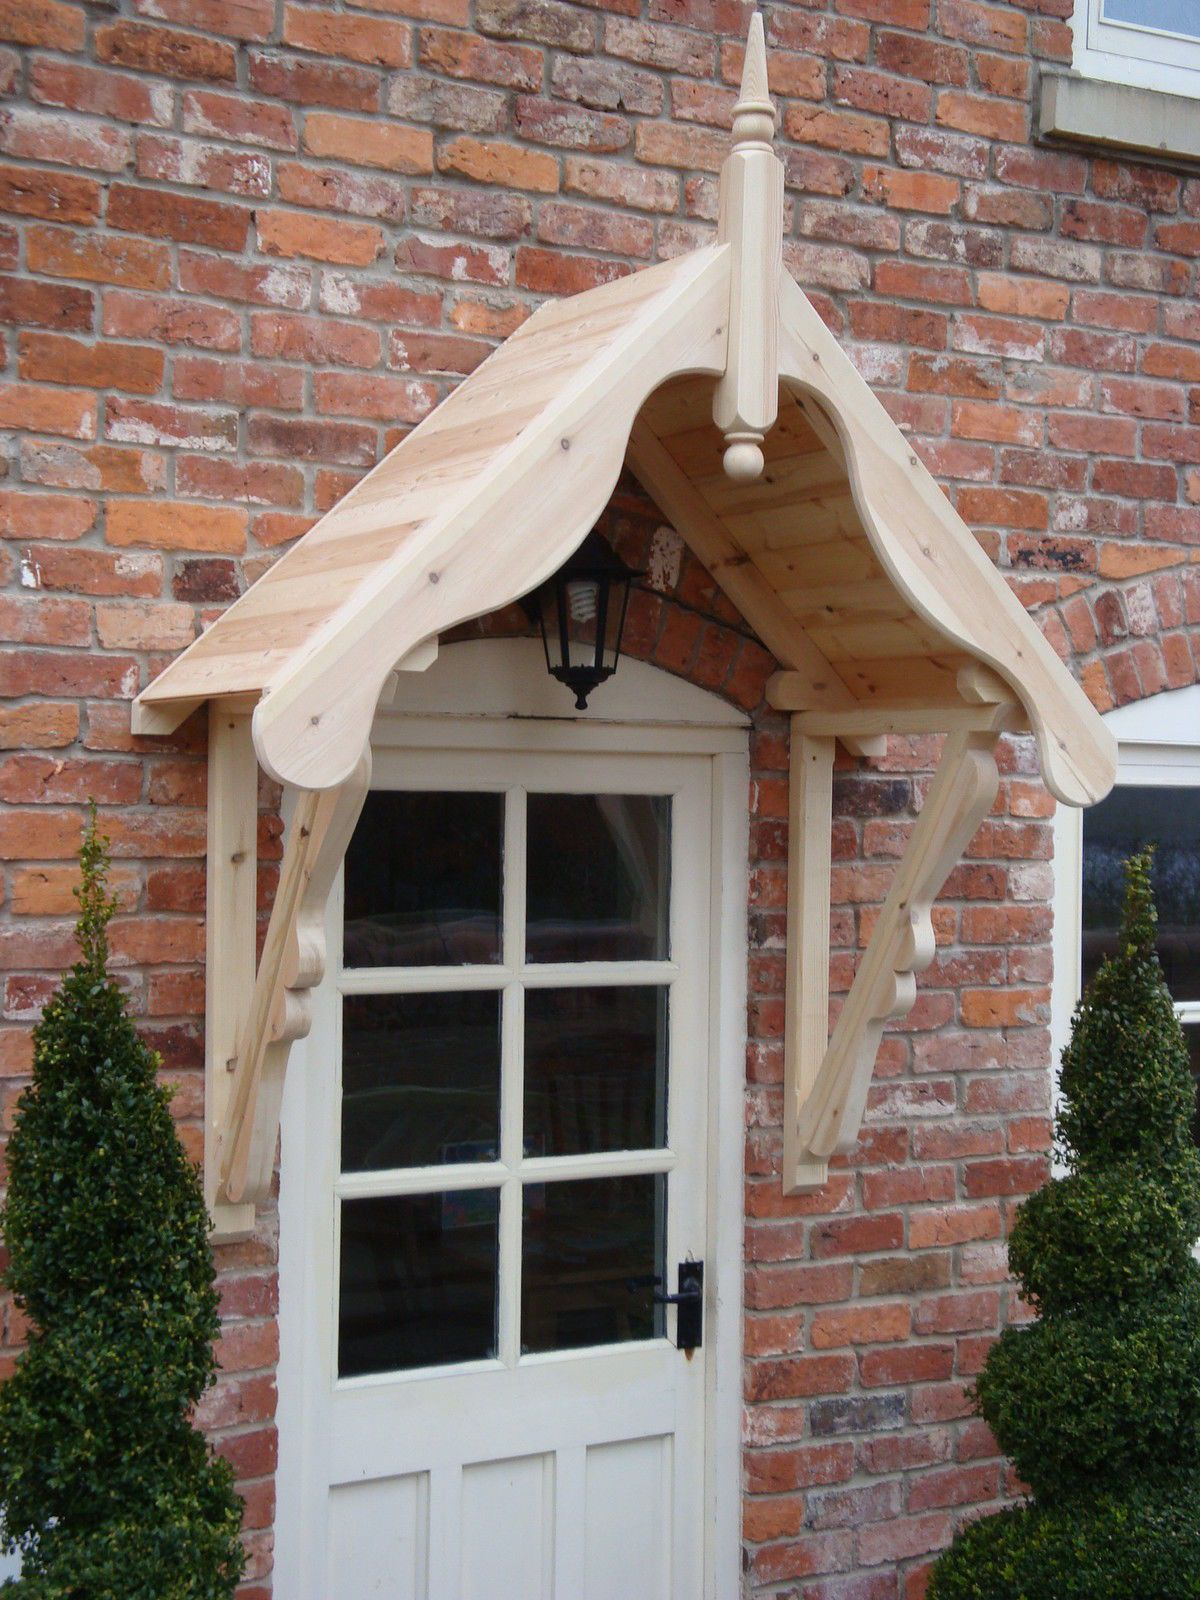 Timber Front Door Canopy Porch 1050mm  LUDLOW gallows brackets canopy FOR SALE u2022 £ & Timber Front Door Canopy Porch 1050mm